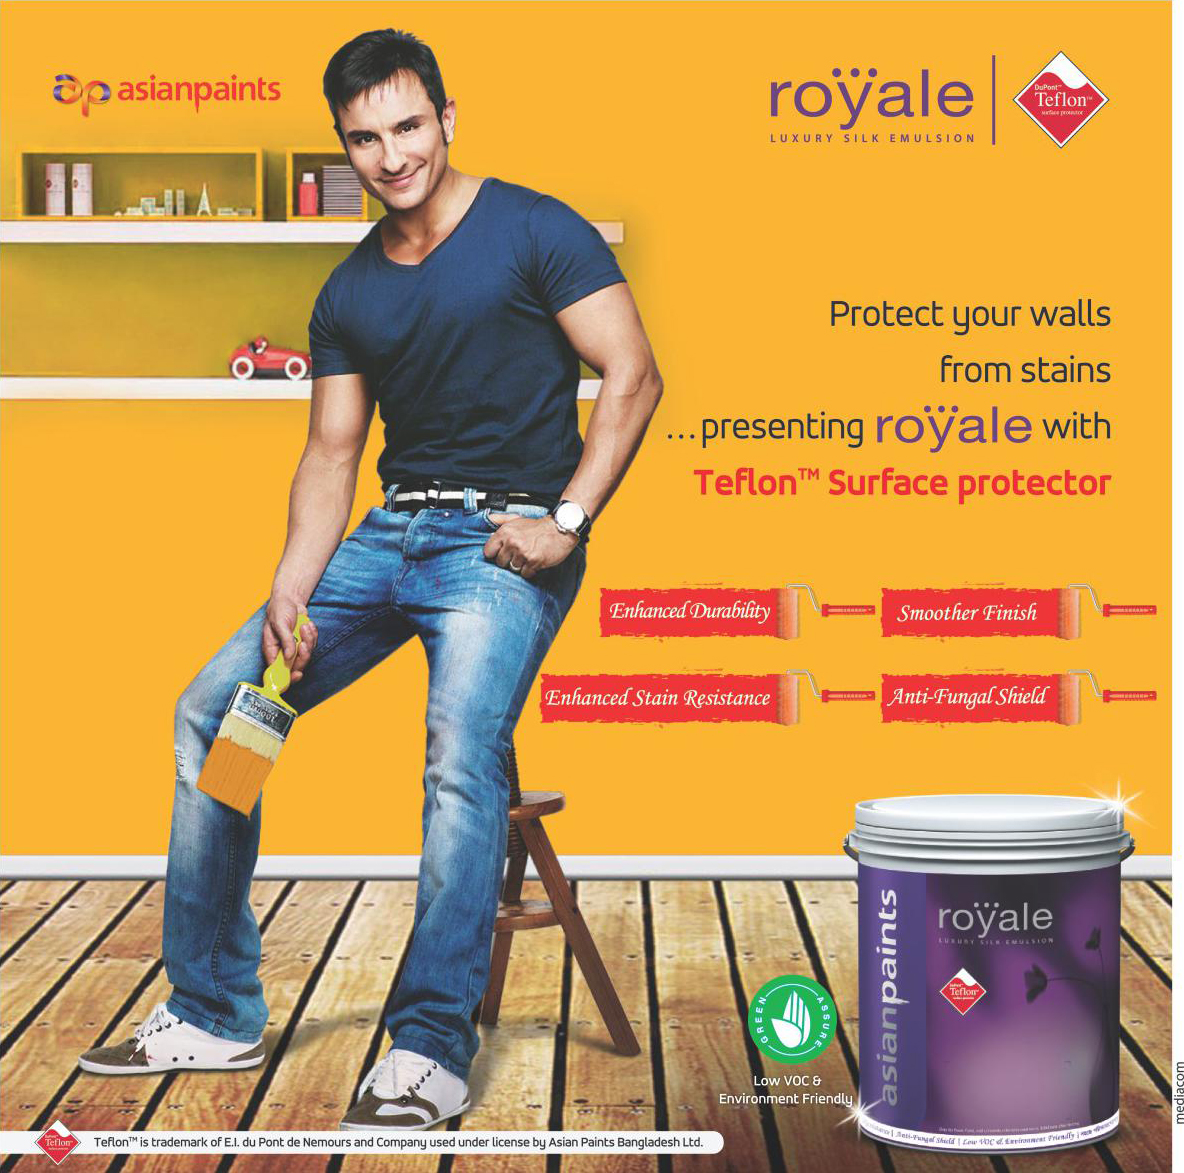 Asian paints advertisements